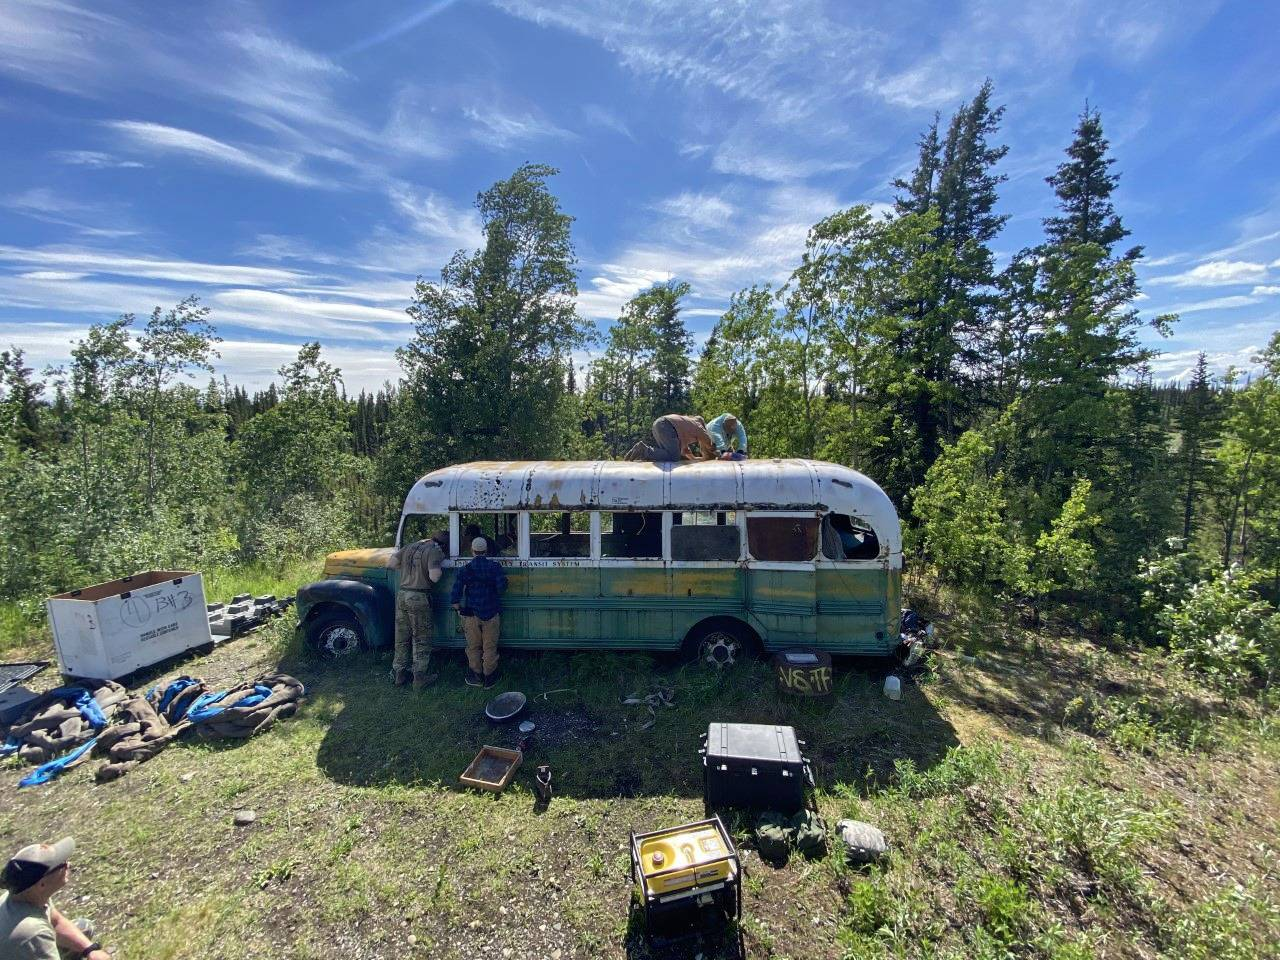 Into the Wild bus removed from the Alaskan wild, citing safety issues